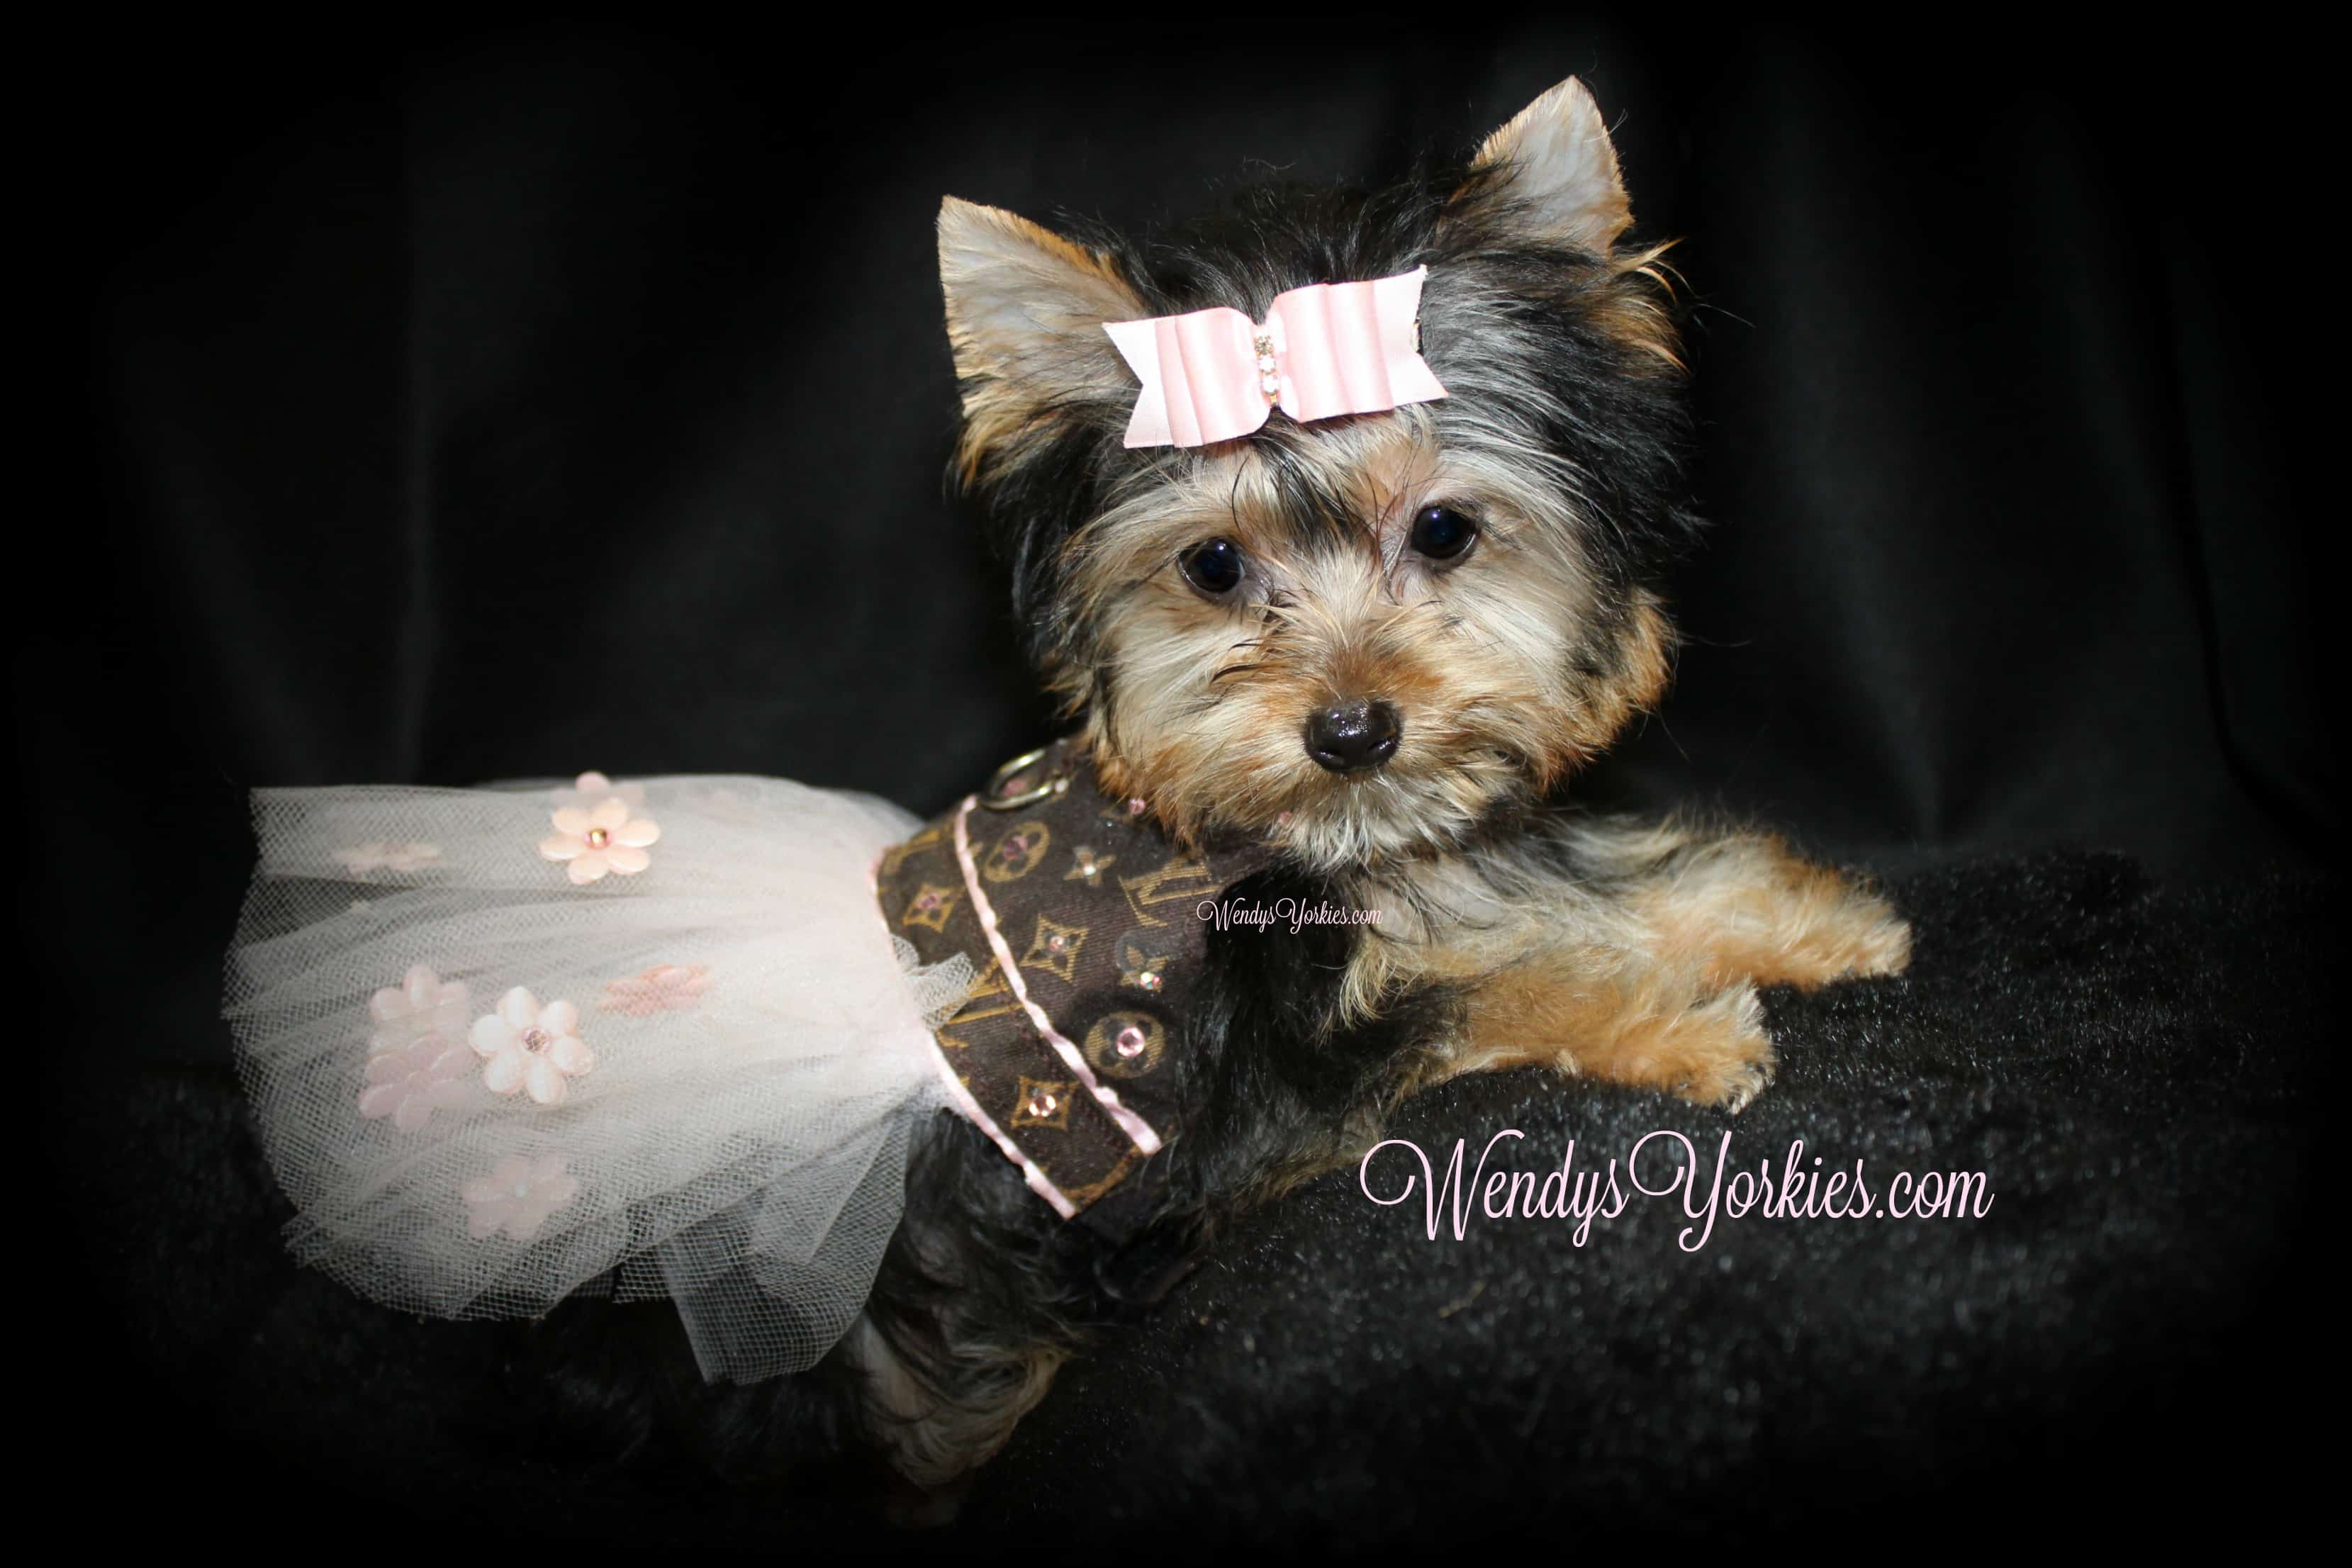 Tiny Teacup Female Yorkie puppy for sale, WendysYorkies.com, Lexie f1